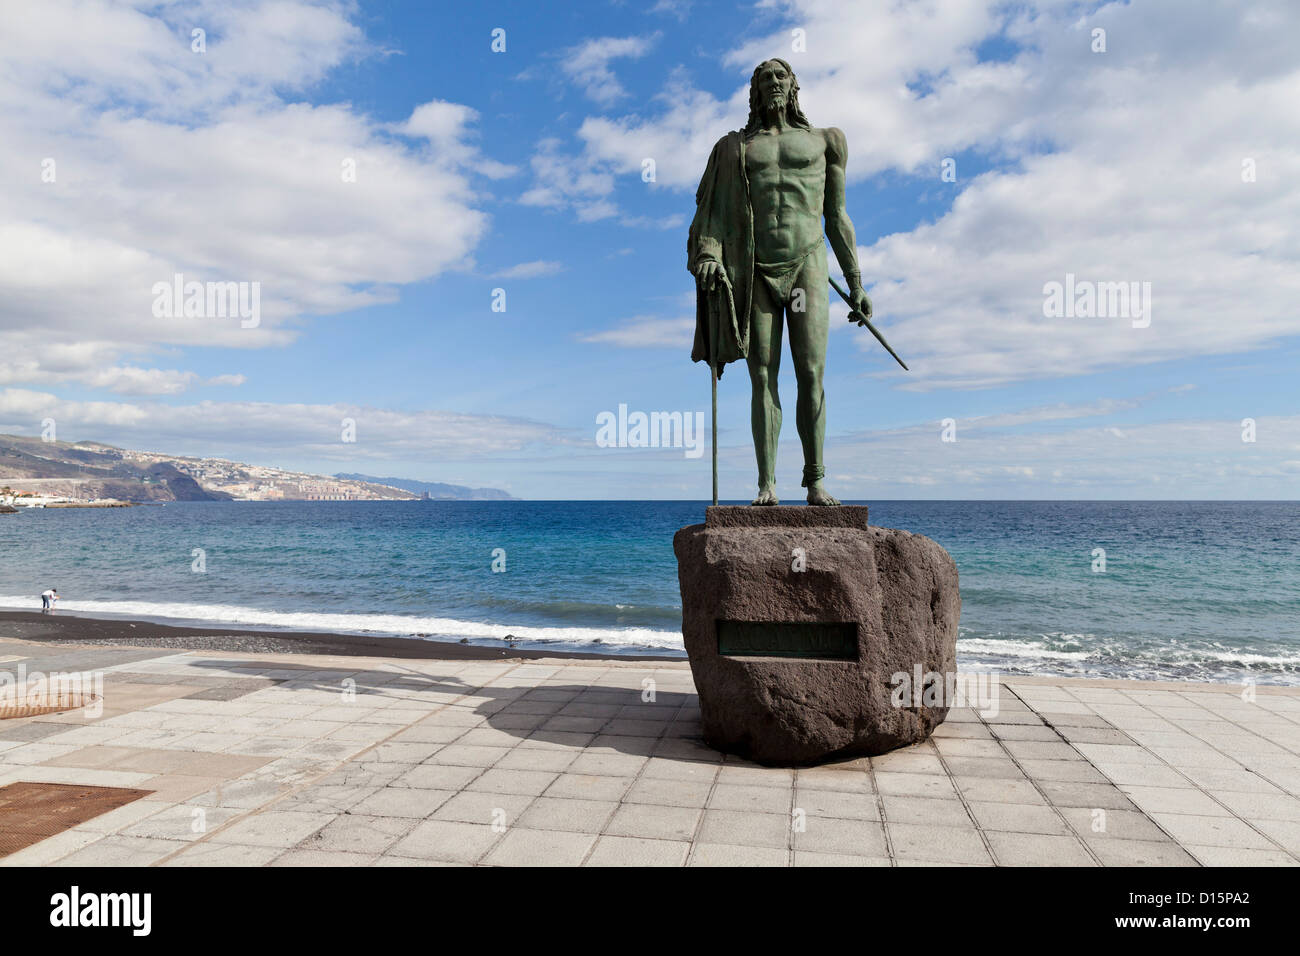 Mencey Acaymo statue of one of the Guanche rulers of Tenerife in Candelaria, Tenerife, Canary Islands, Spain - Stock Image